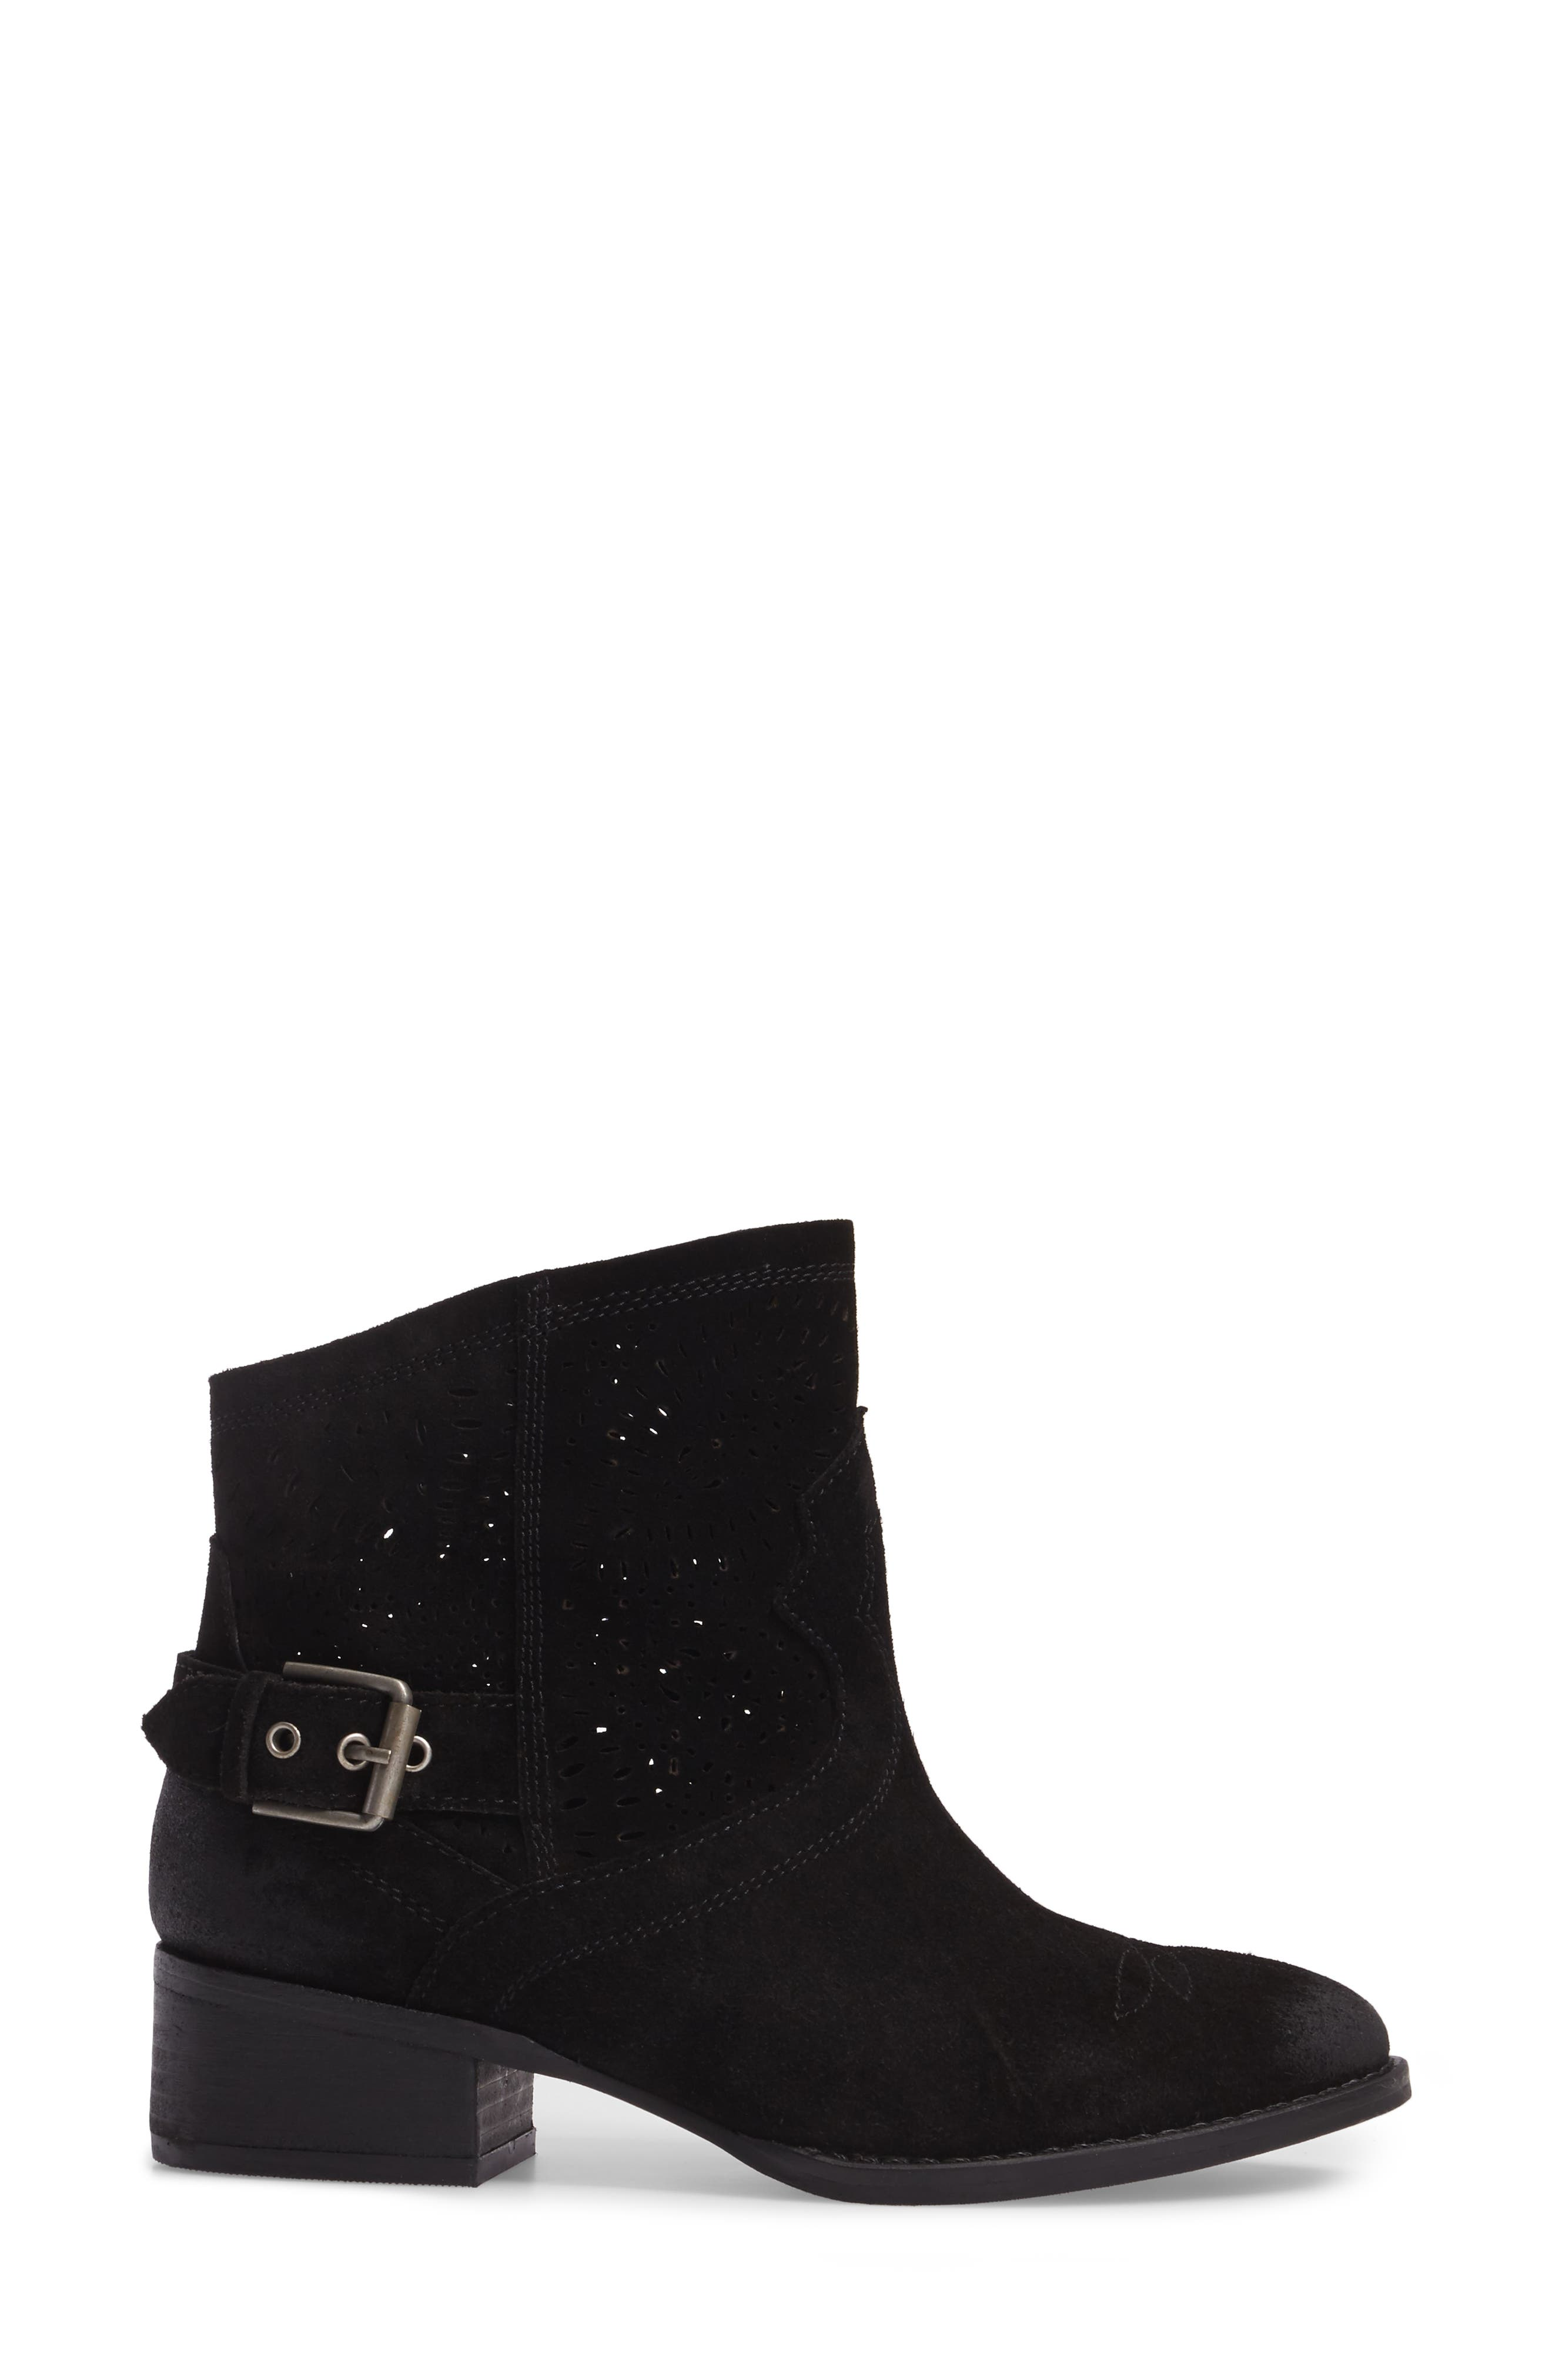 Zoey Perforated Bootie,                             Alternate thumbnail 3, color,                             Black Suede